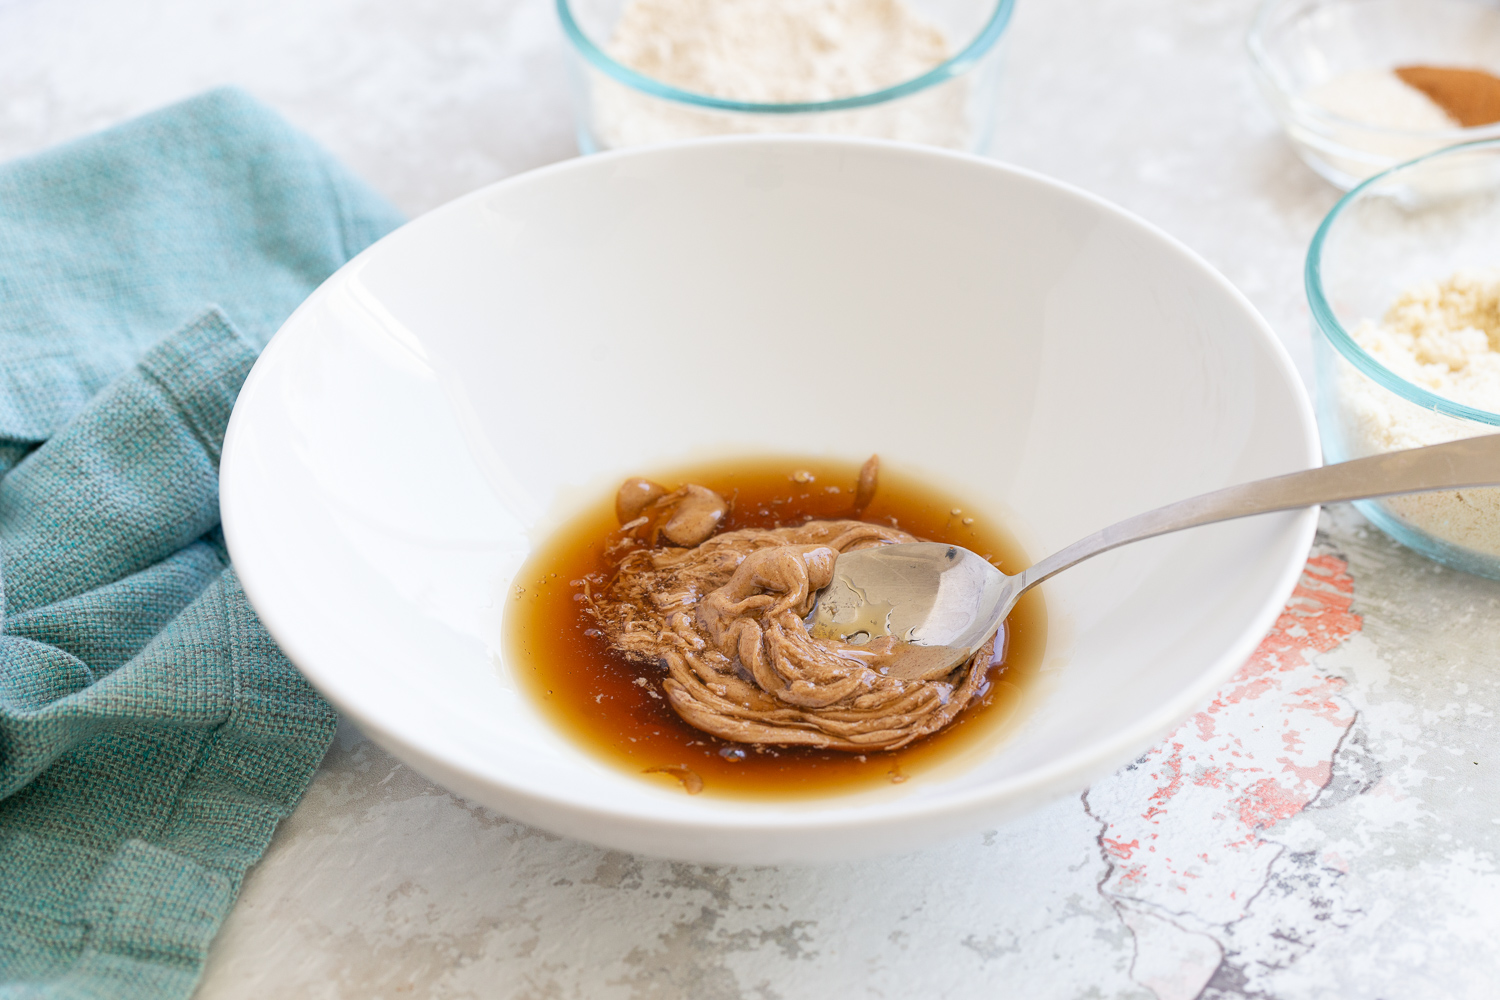 maple syrup and nut butter being stirred together in a small bowl